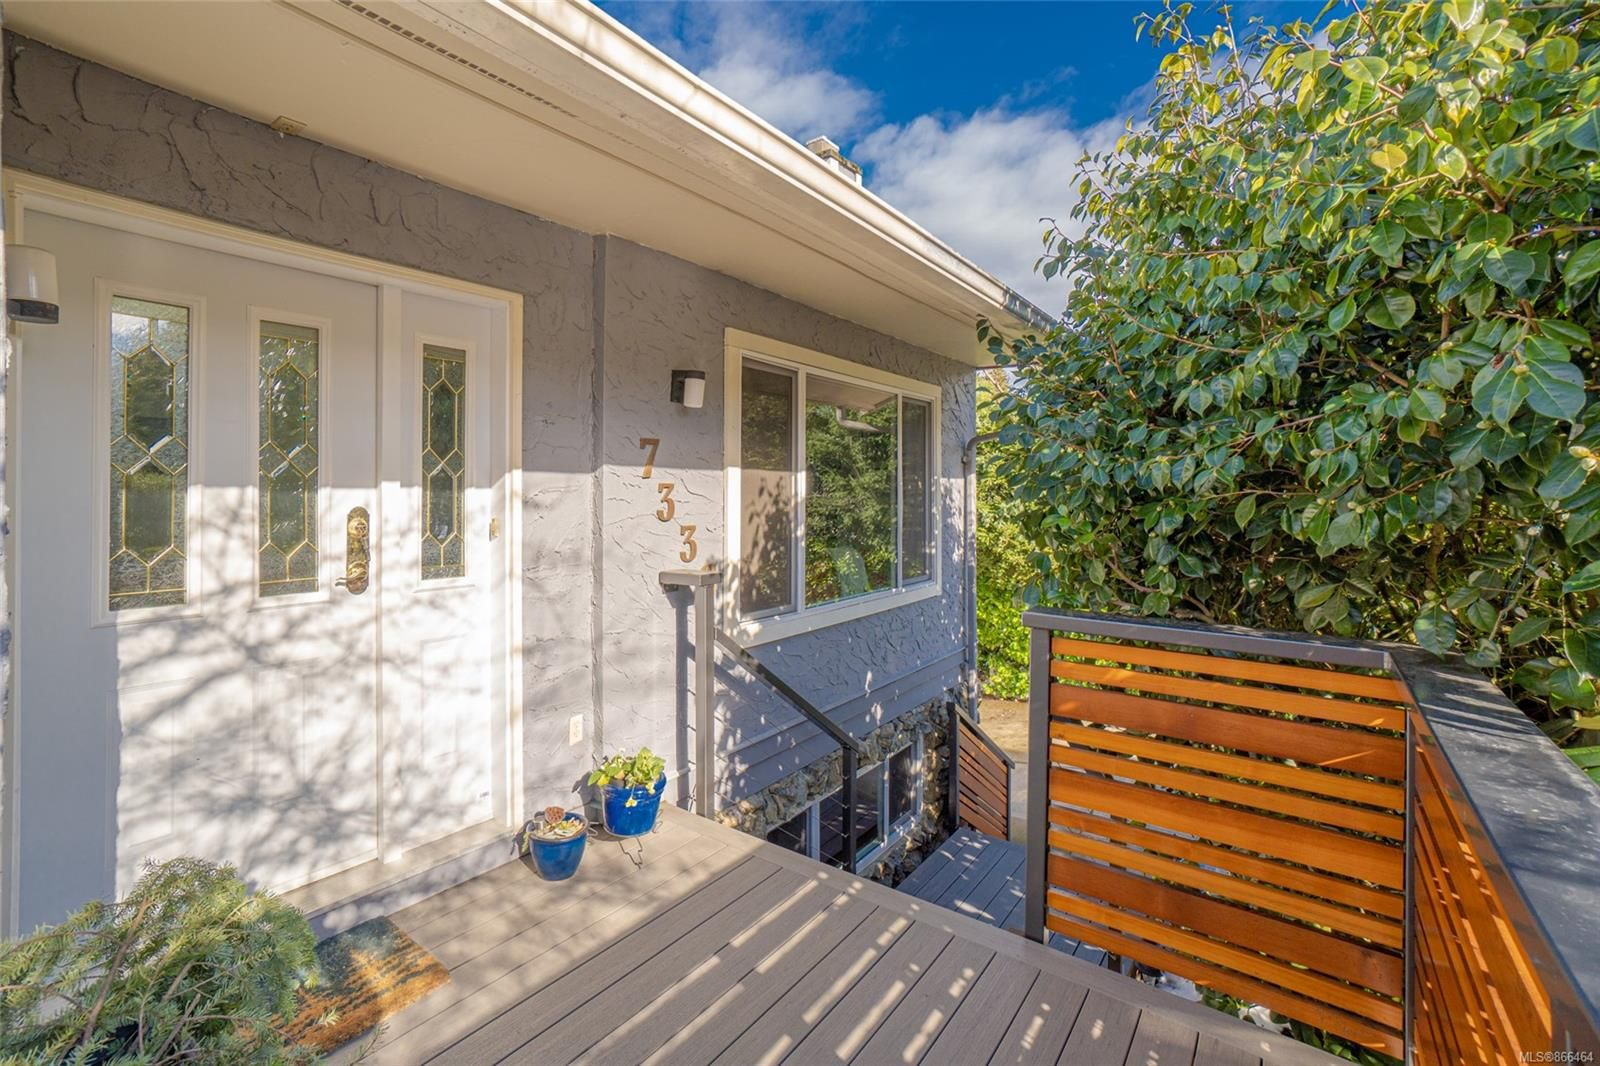 Main Photo: 7338 ROSSITER Ave in : Na Lower Lantzville House for sale (Nanaimo)  : MLS®# 866464